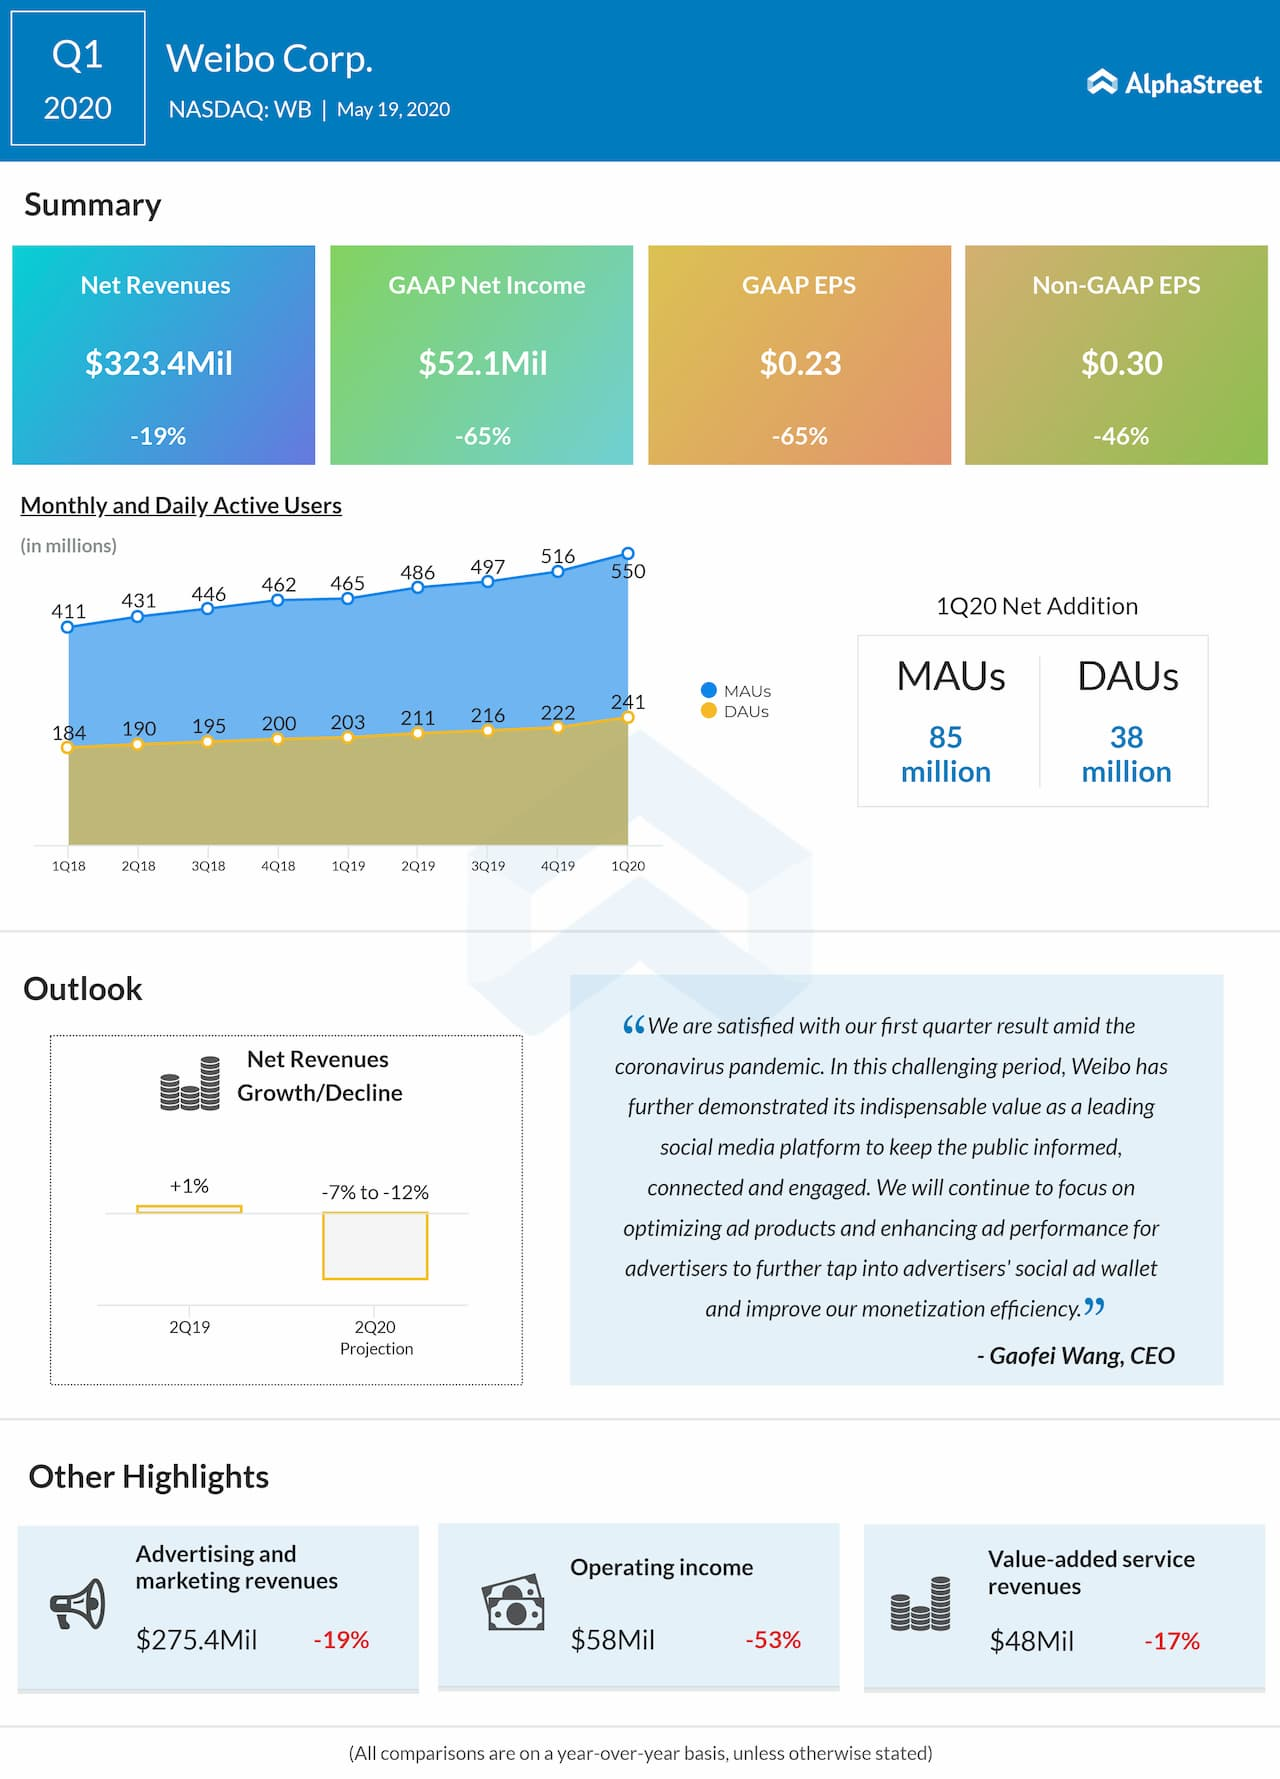 Weibo (WB) Q1 2020 earnings review